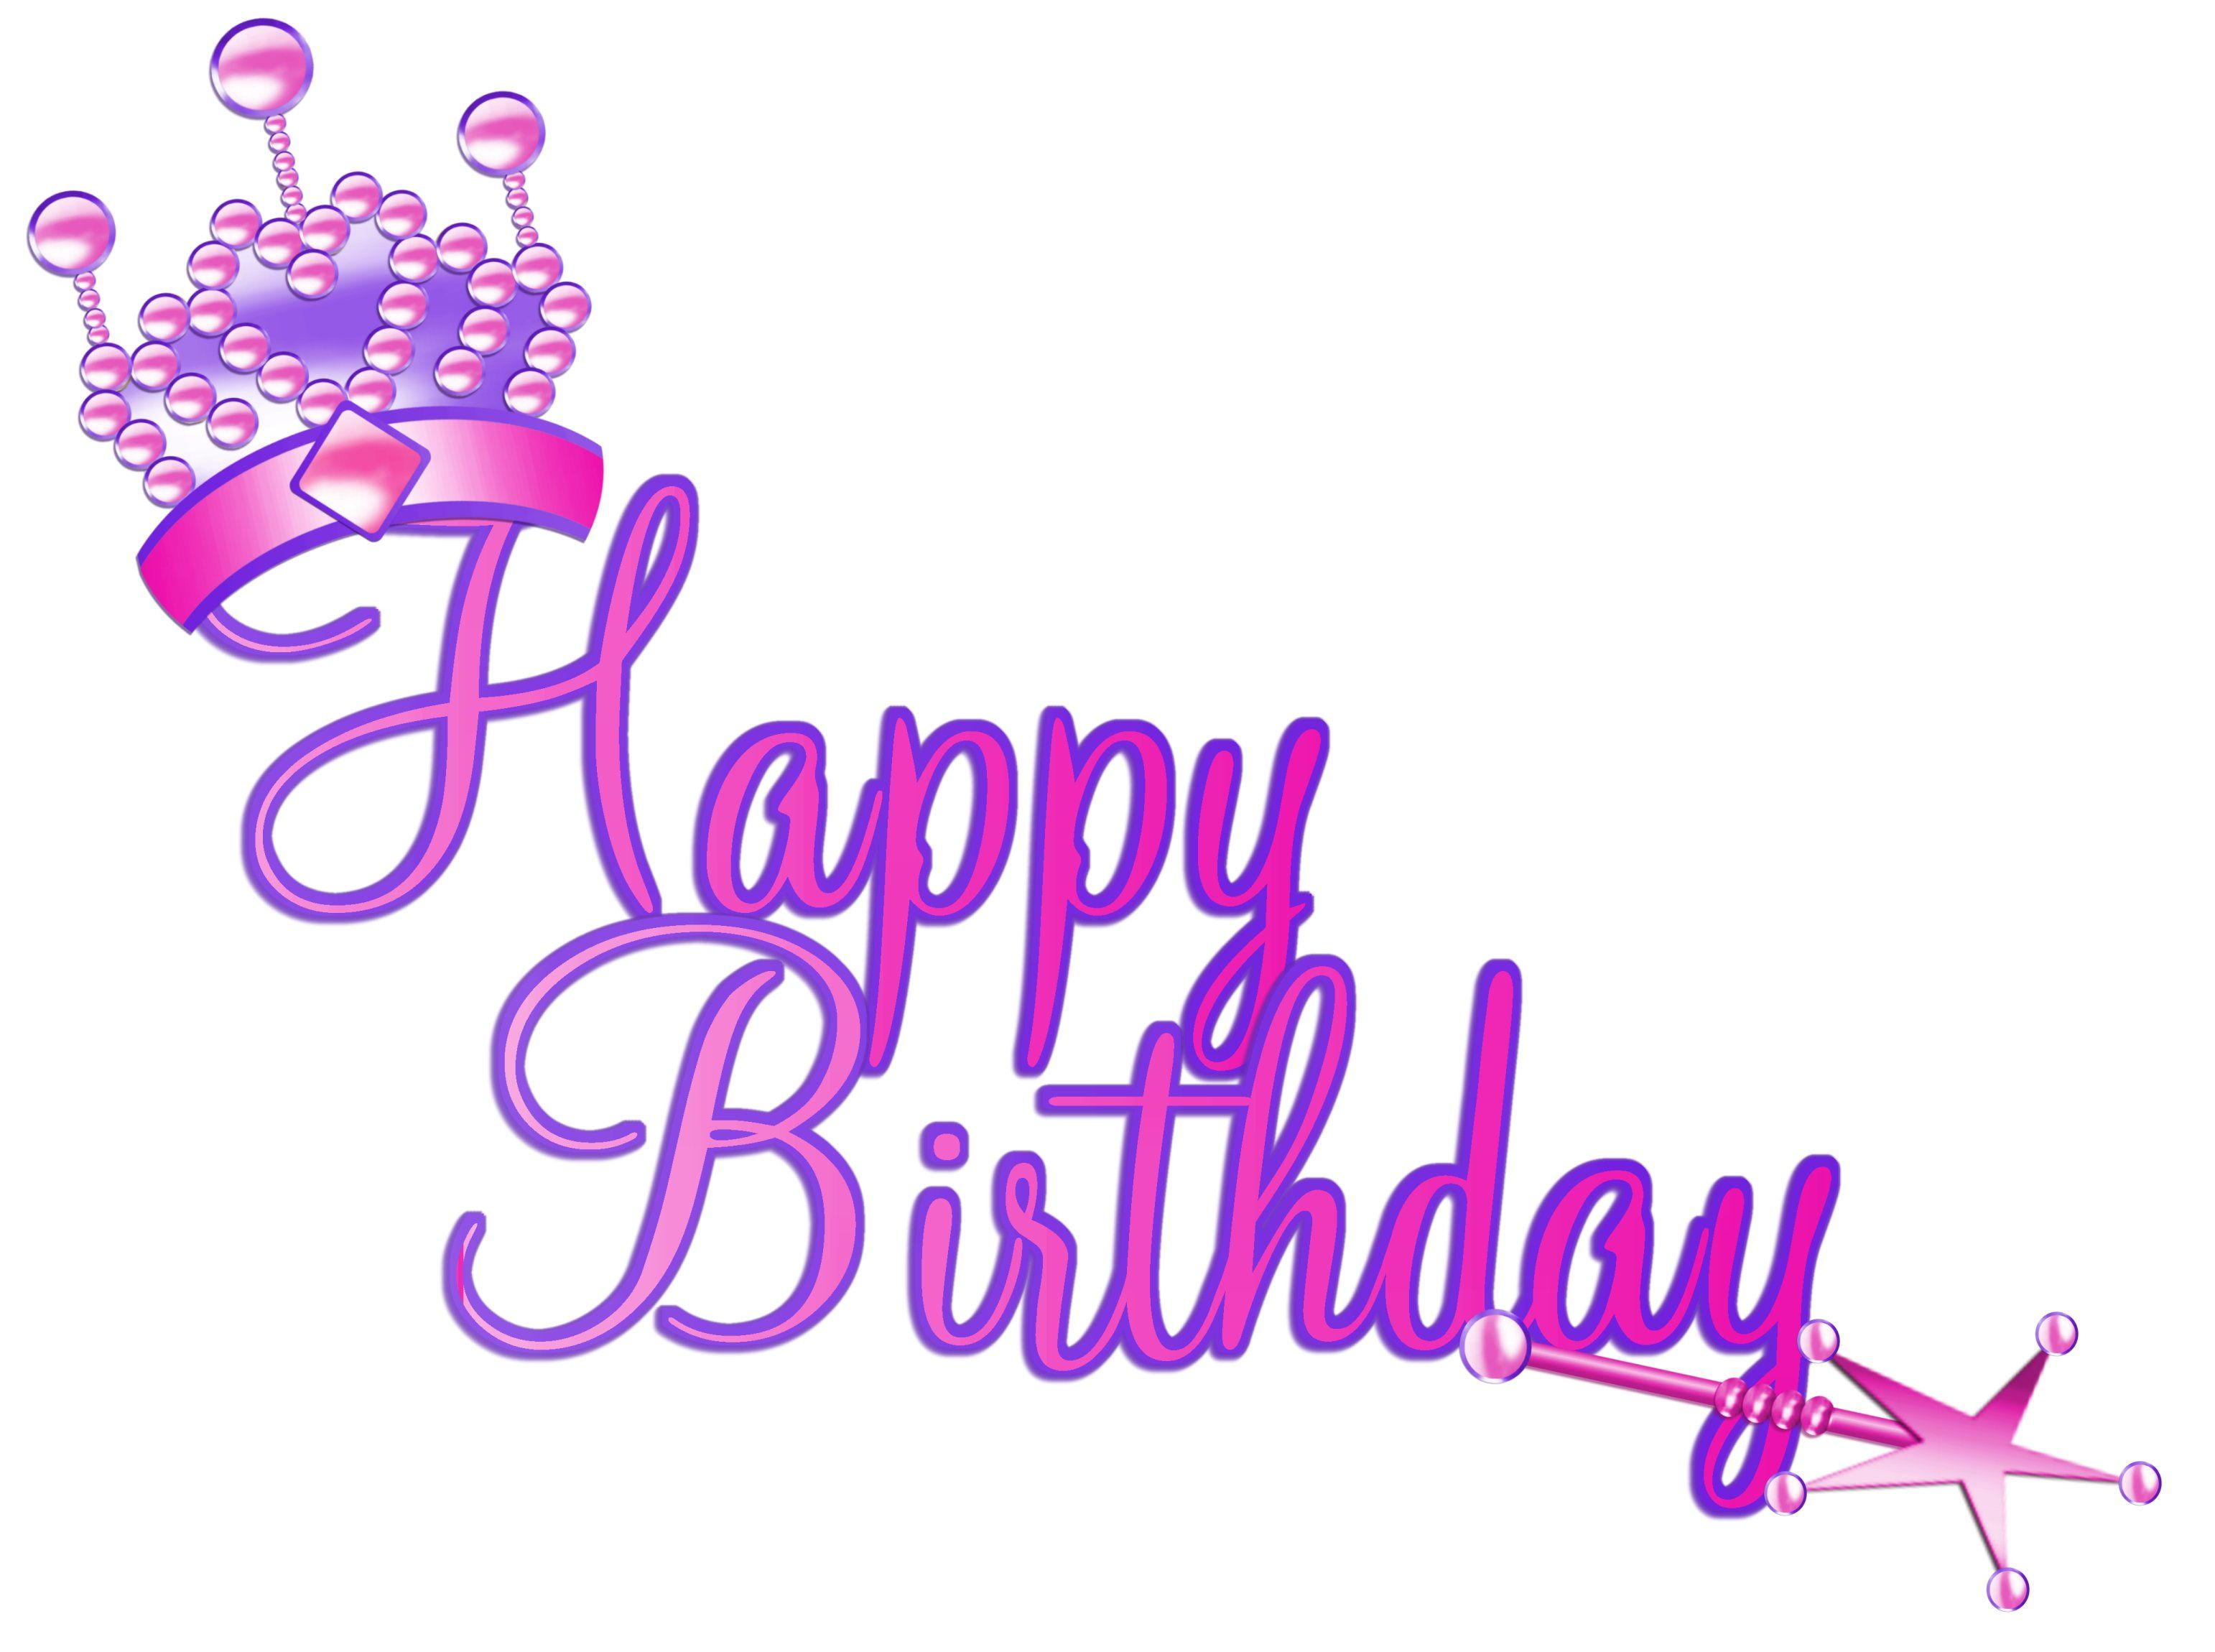 Free download Glamorous Happy Birthday Clipart for your creation.